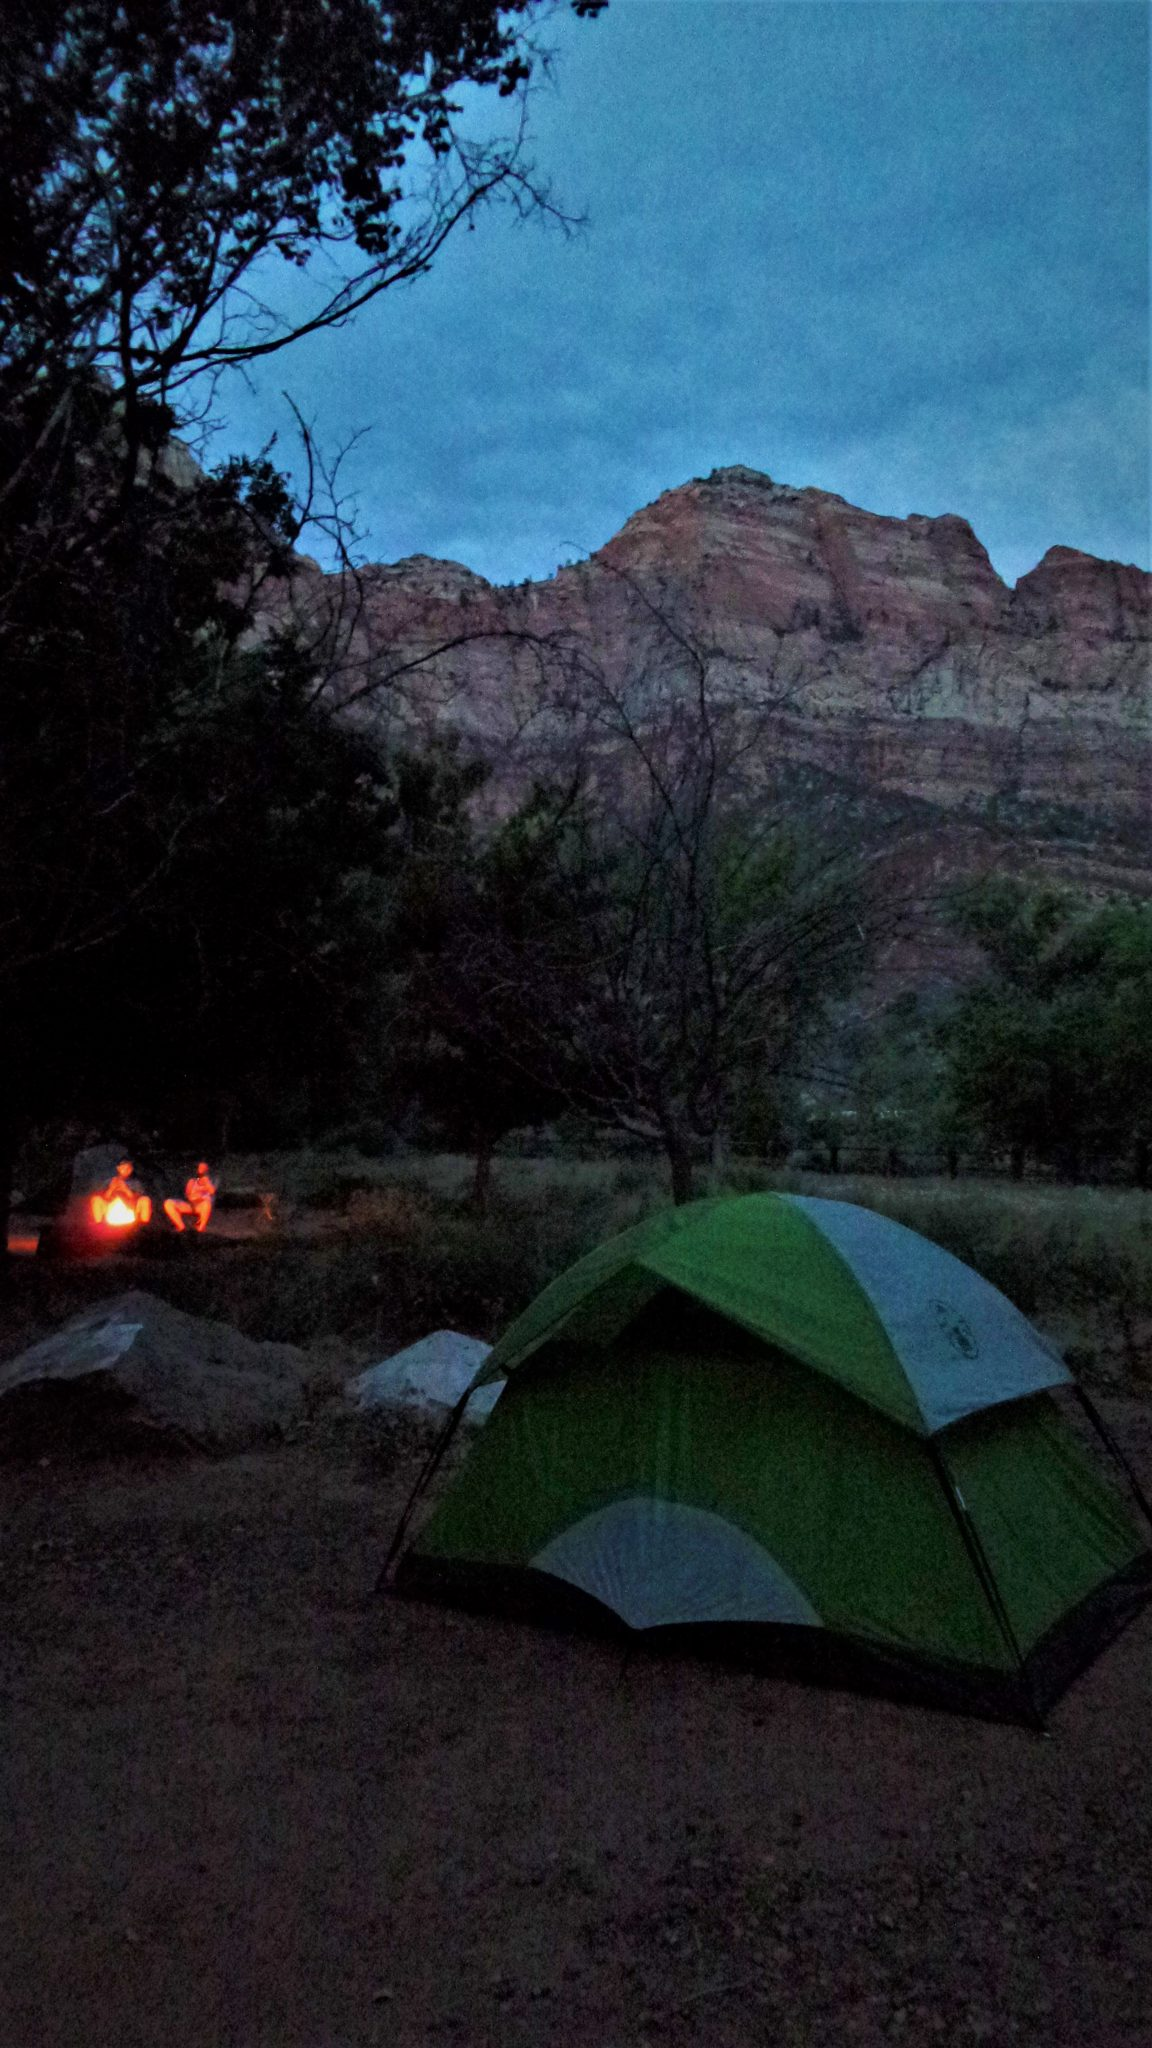 Night camping at Zion National Park, Utah | Round the ...